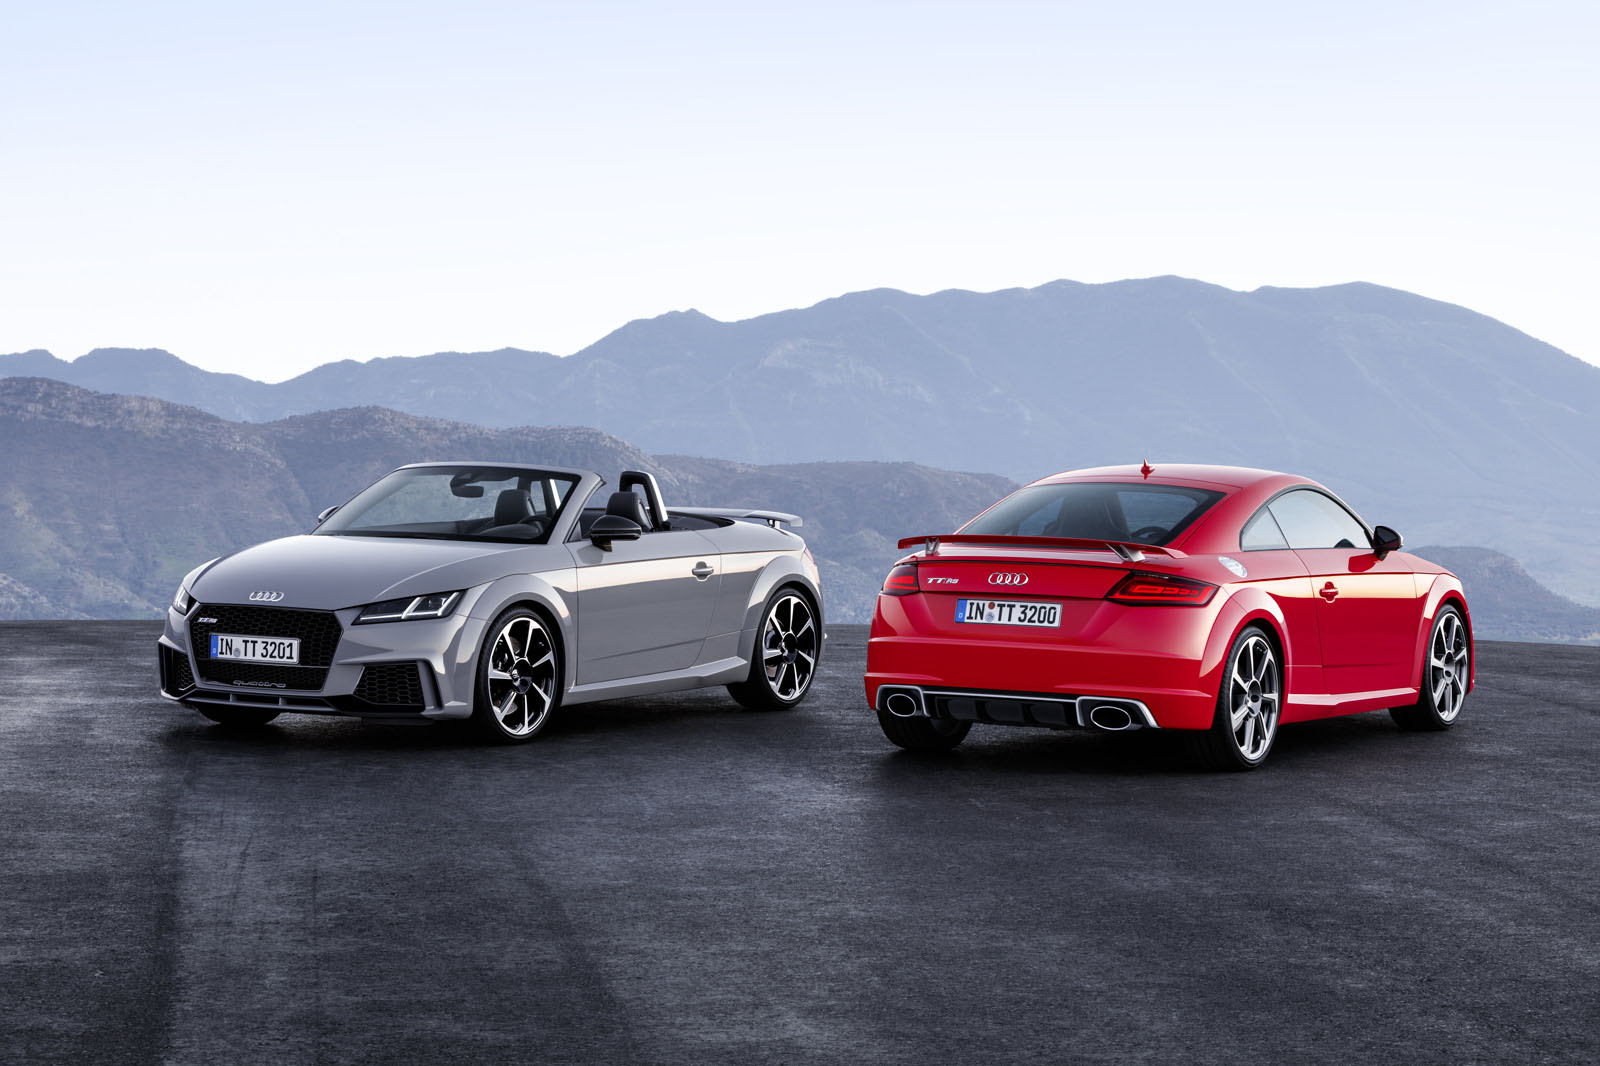 2017 Audi Tt Rs Coupe And Roadster Debut With 400 Hp No Manual